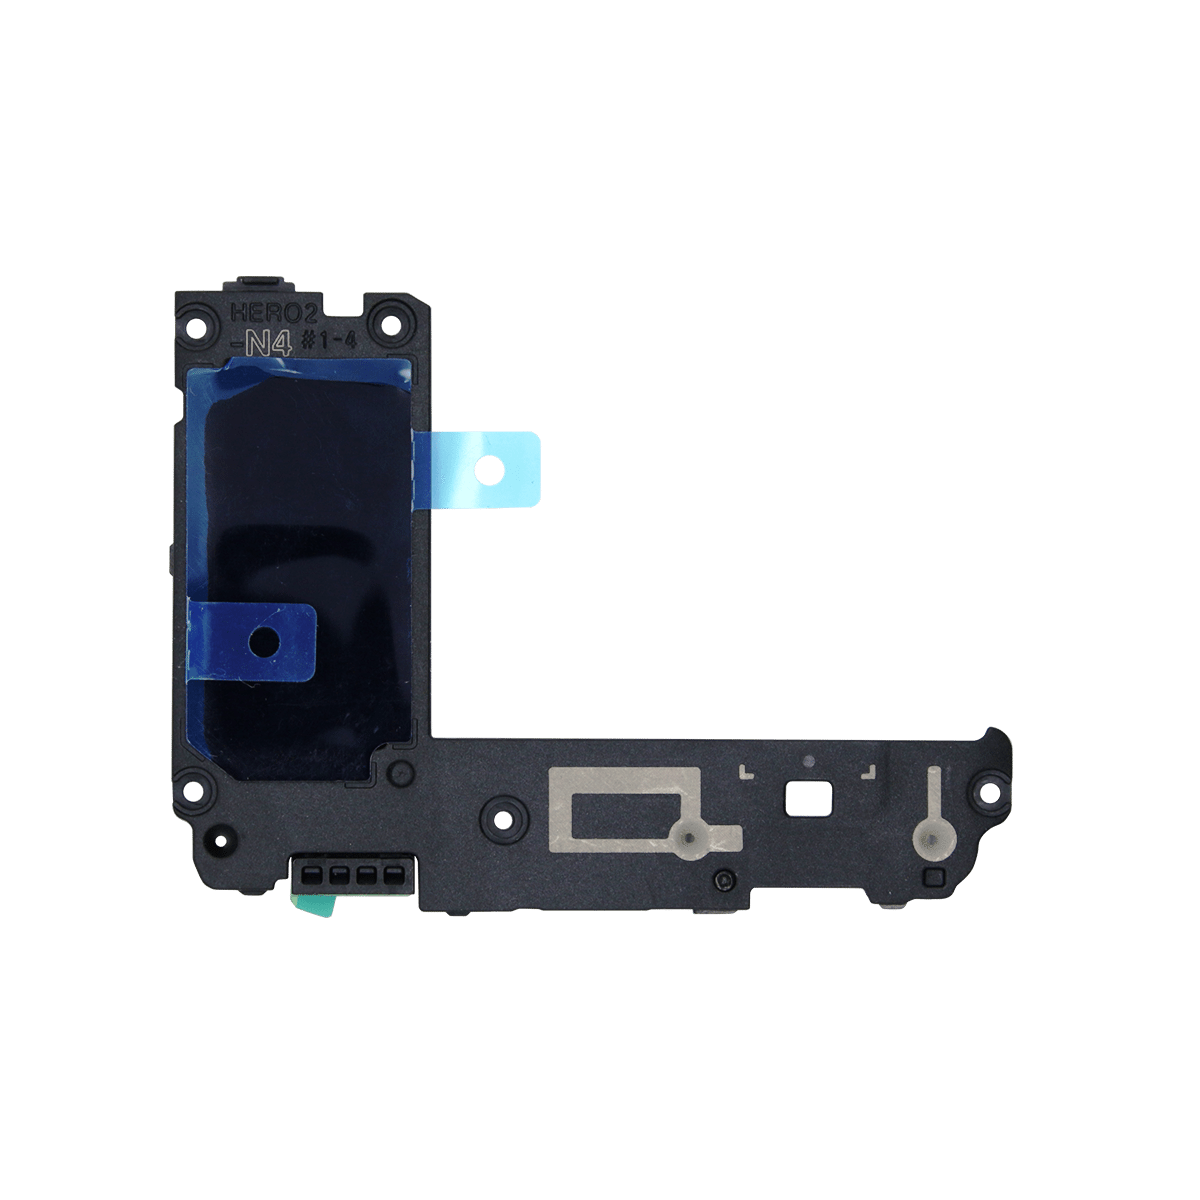 Samsung Galaxy S7 Edge Loudspeaker Replacement